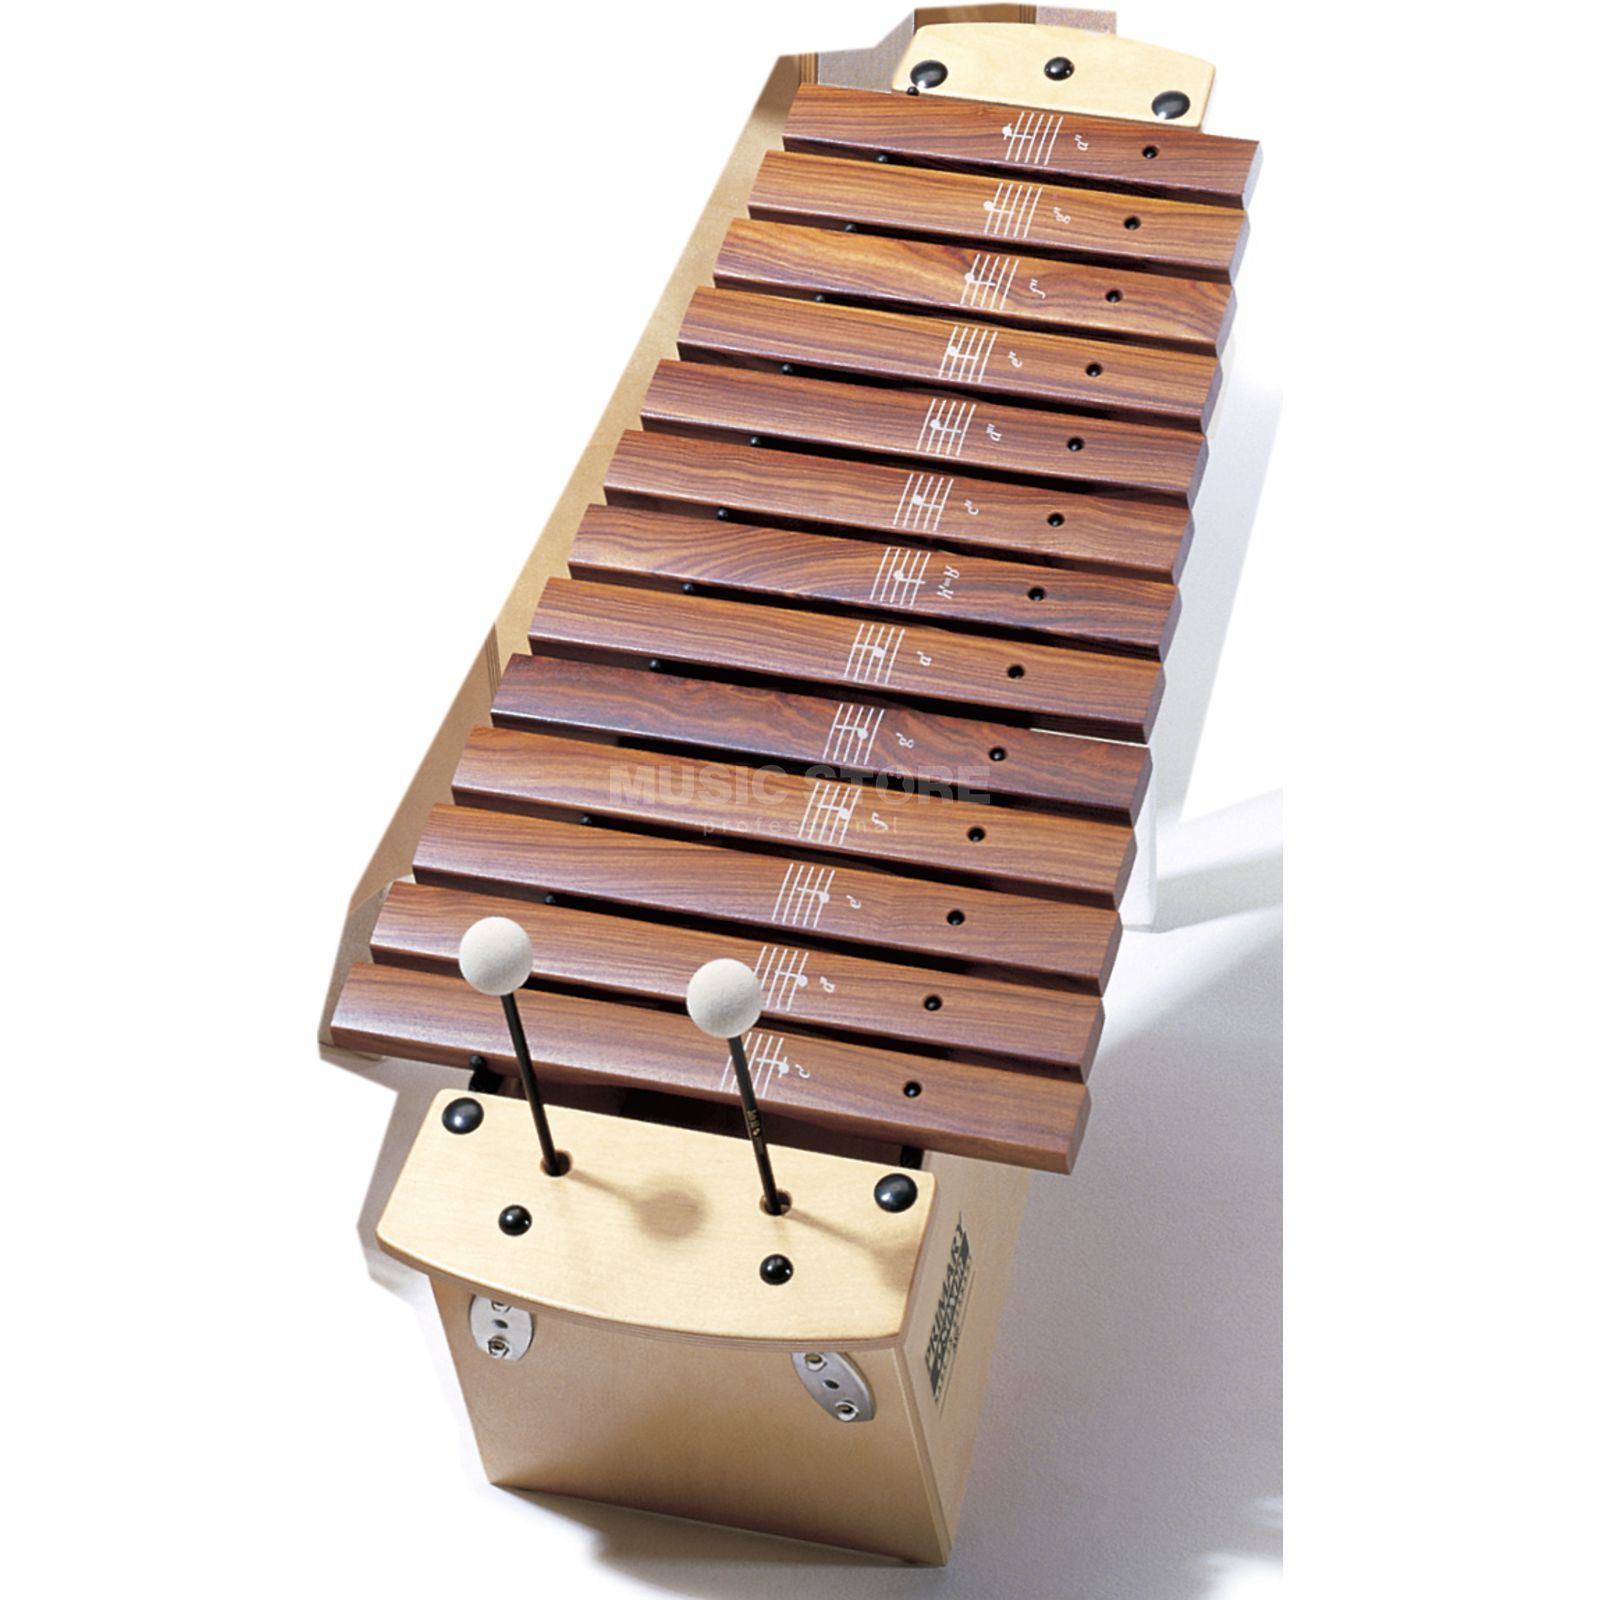 Sonor GBXP 1.1 Xylophone Primary Great Bass Product Image